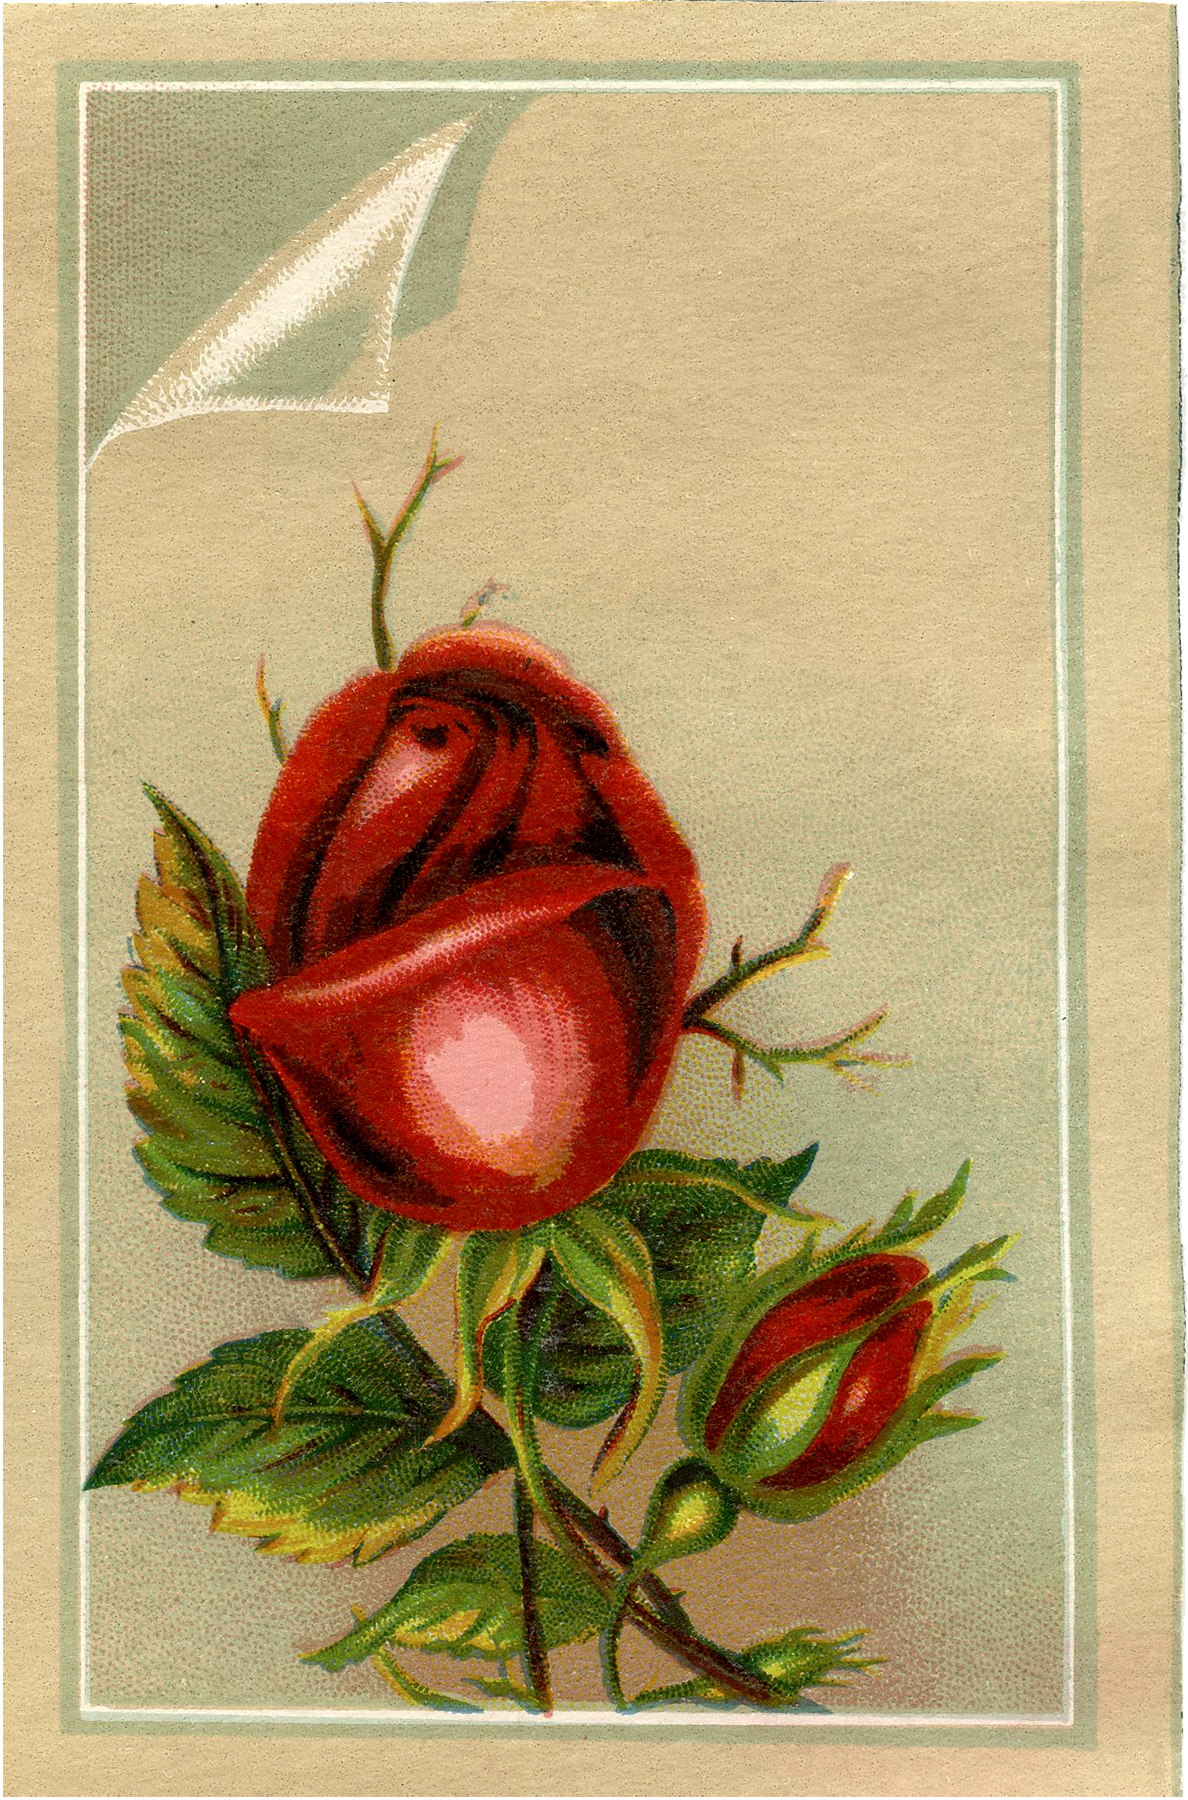 Vintage Red Rosebud Image The Graphics Fairy